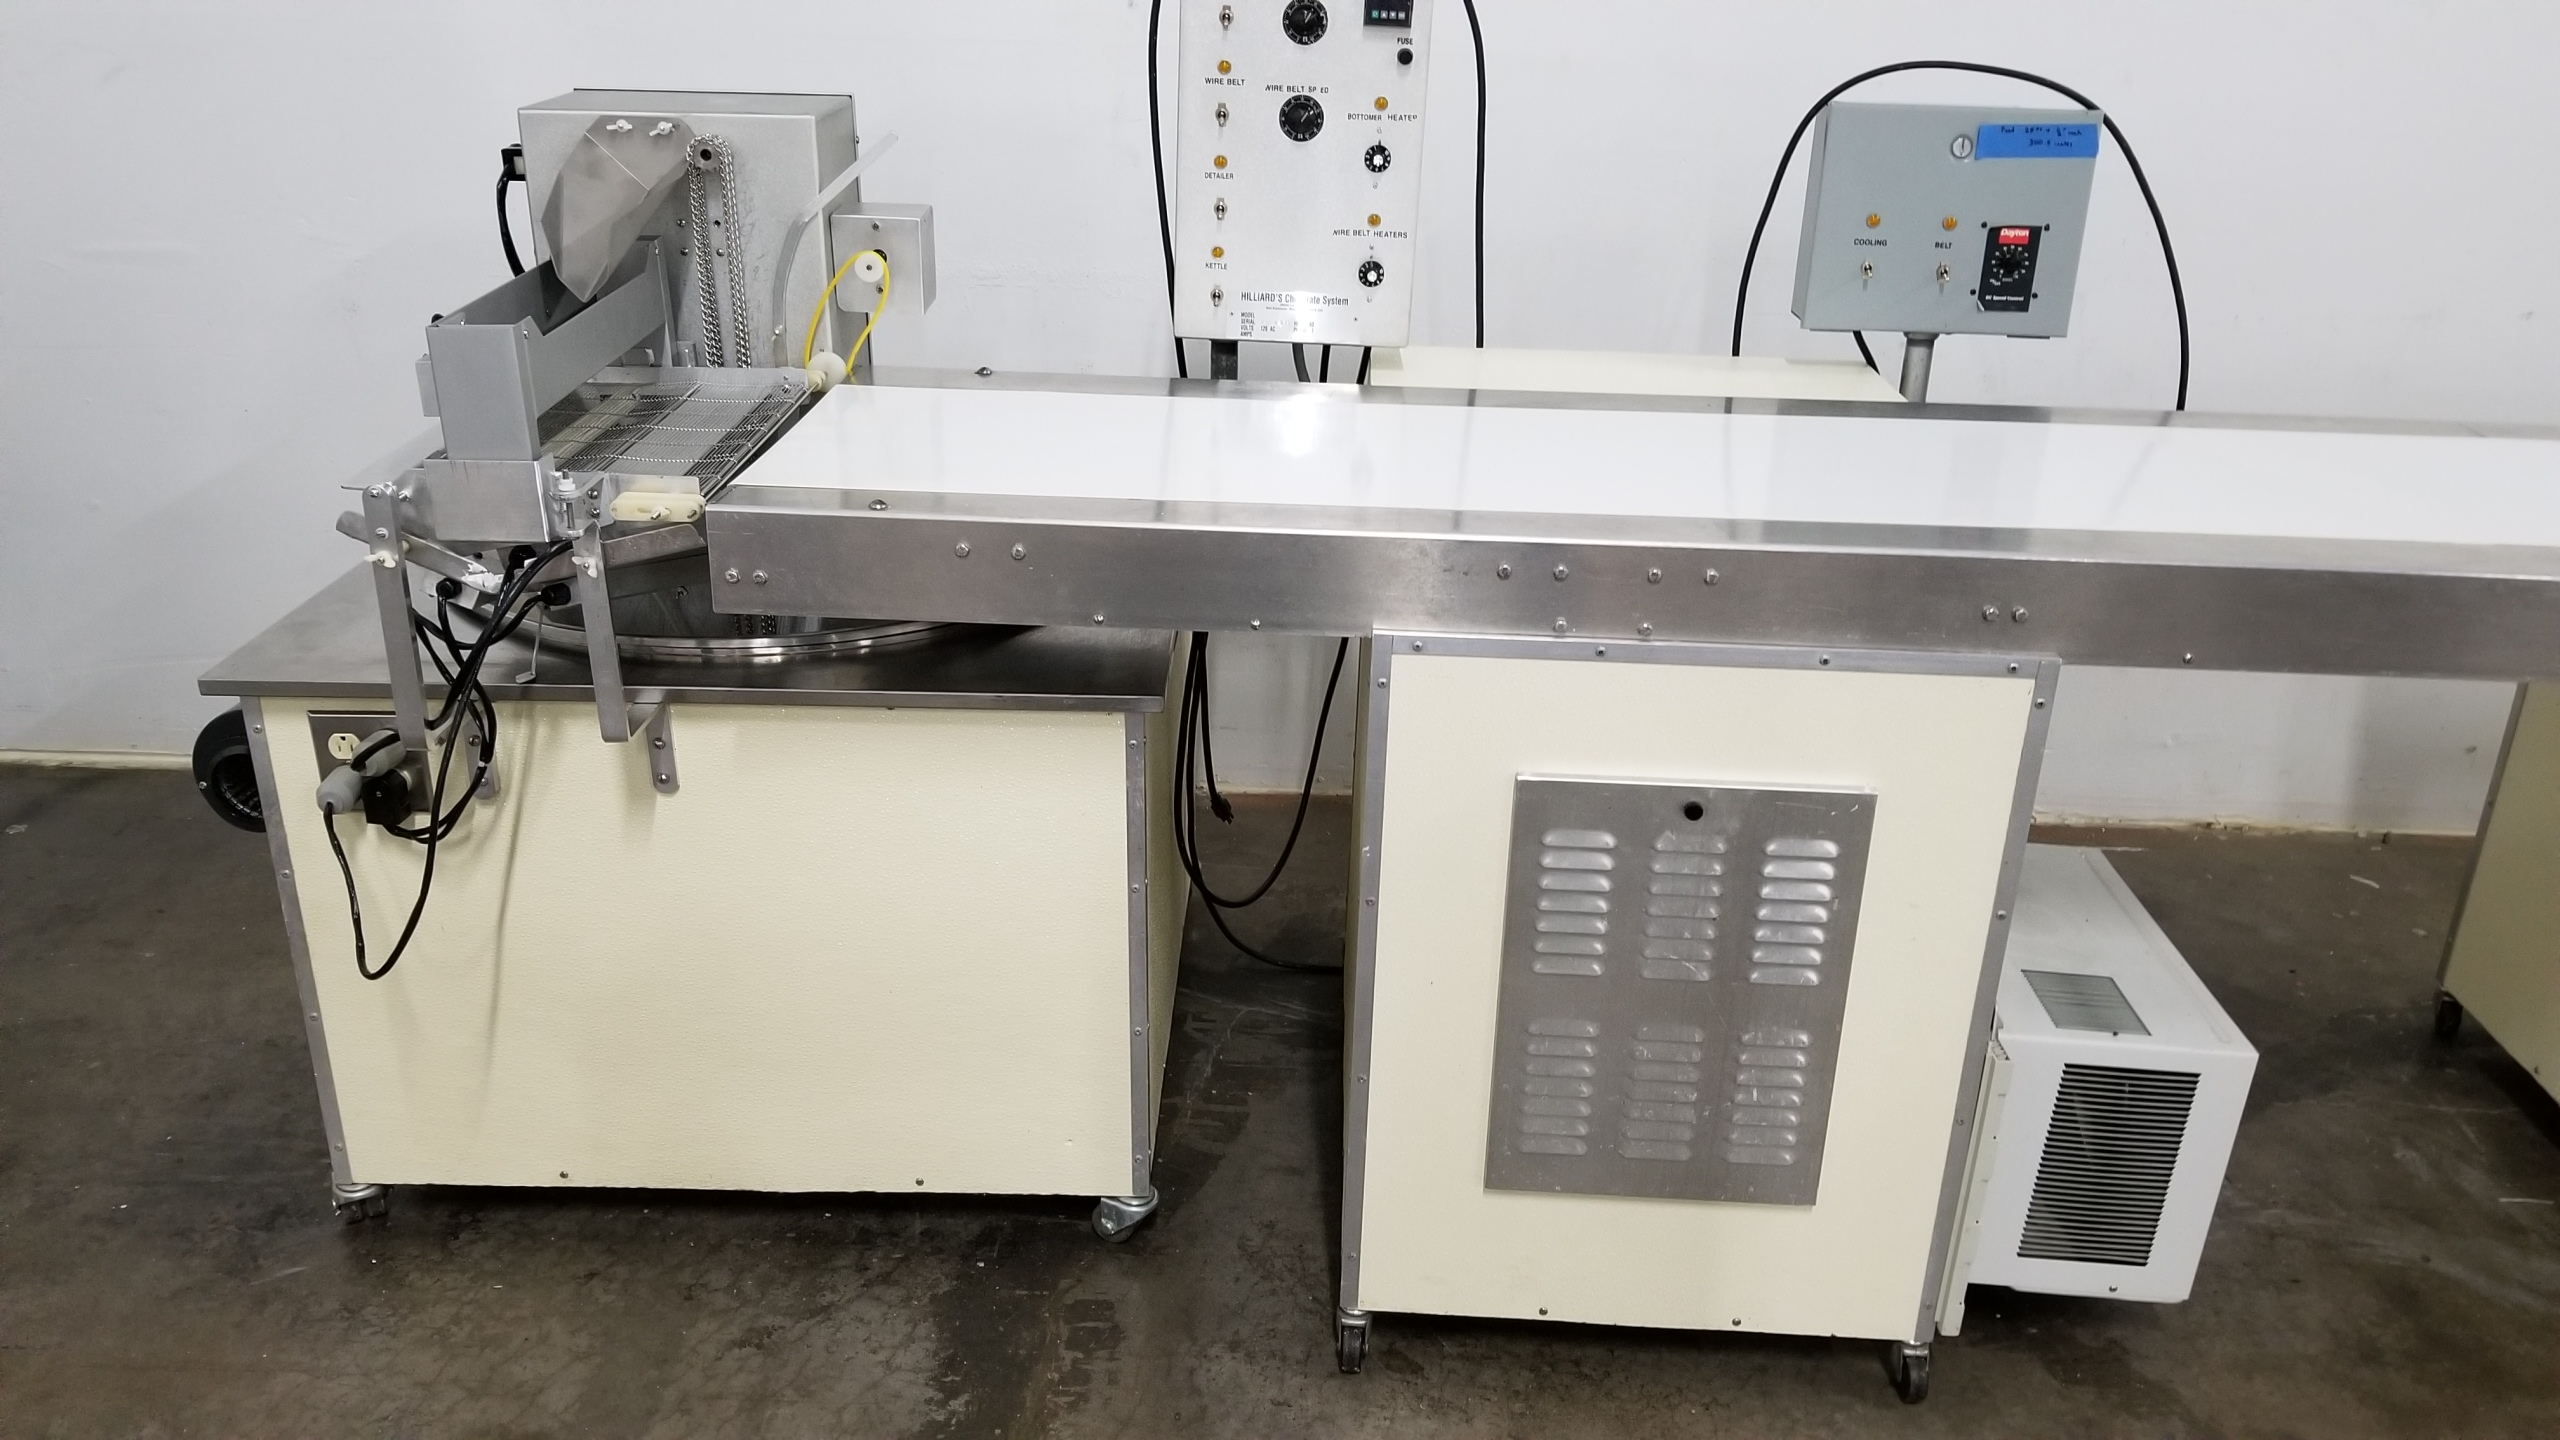 """Lot 21 - Hilliard 16"""" wide Tempering Bottomer #040430 with Hilliard 16"""" wide x 12-ft long Cold Plate Conveyor"""